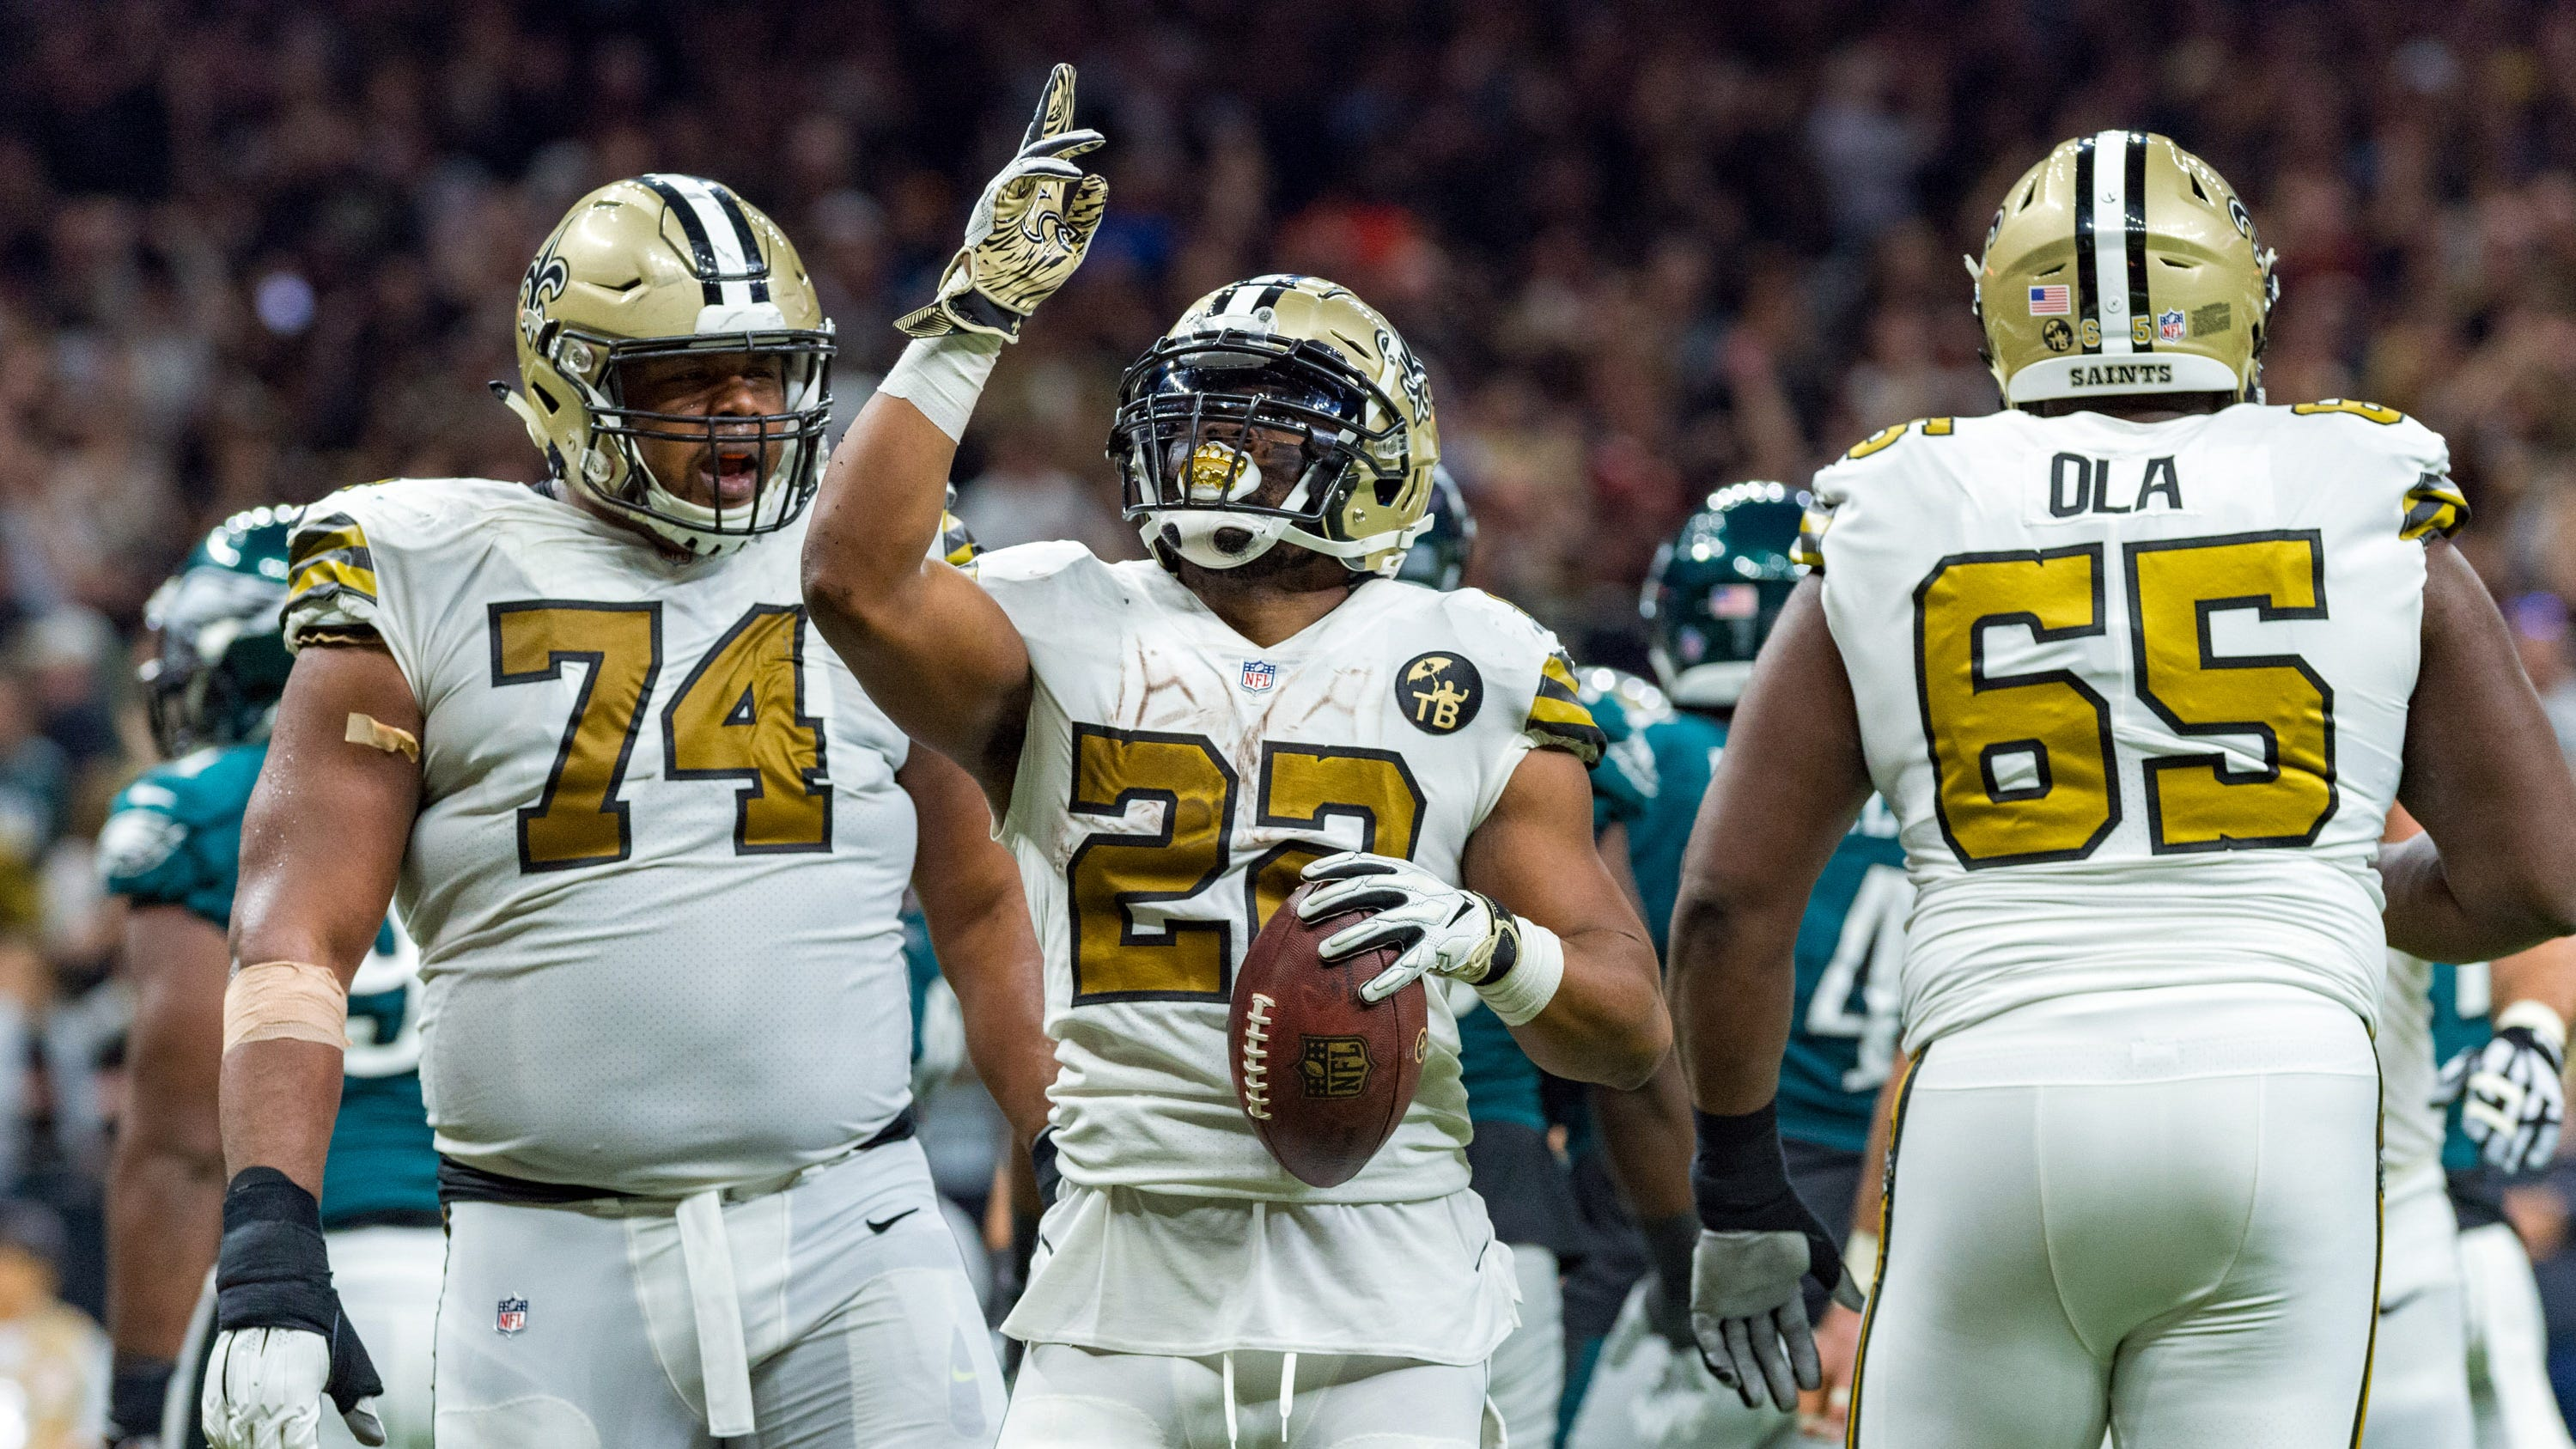 With Rams losing Sunday night, the Saints need only win 2 of remaining 3 games to clinch No. 1 seed and home field advantage in NFC Playoffs